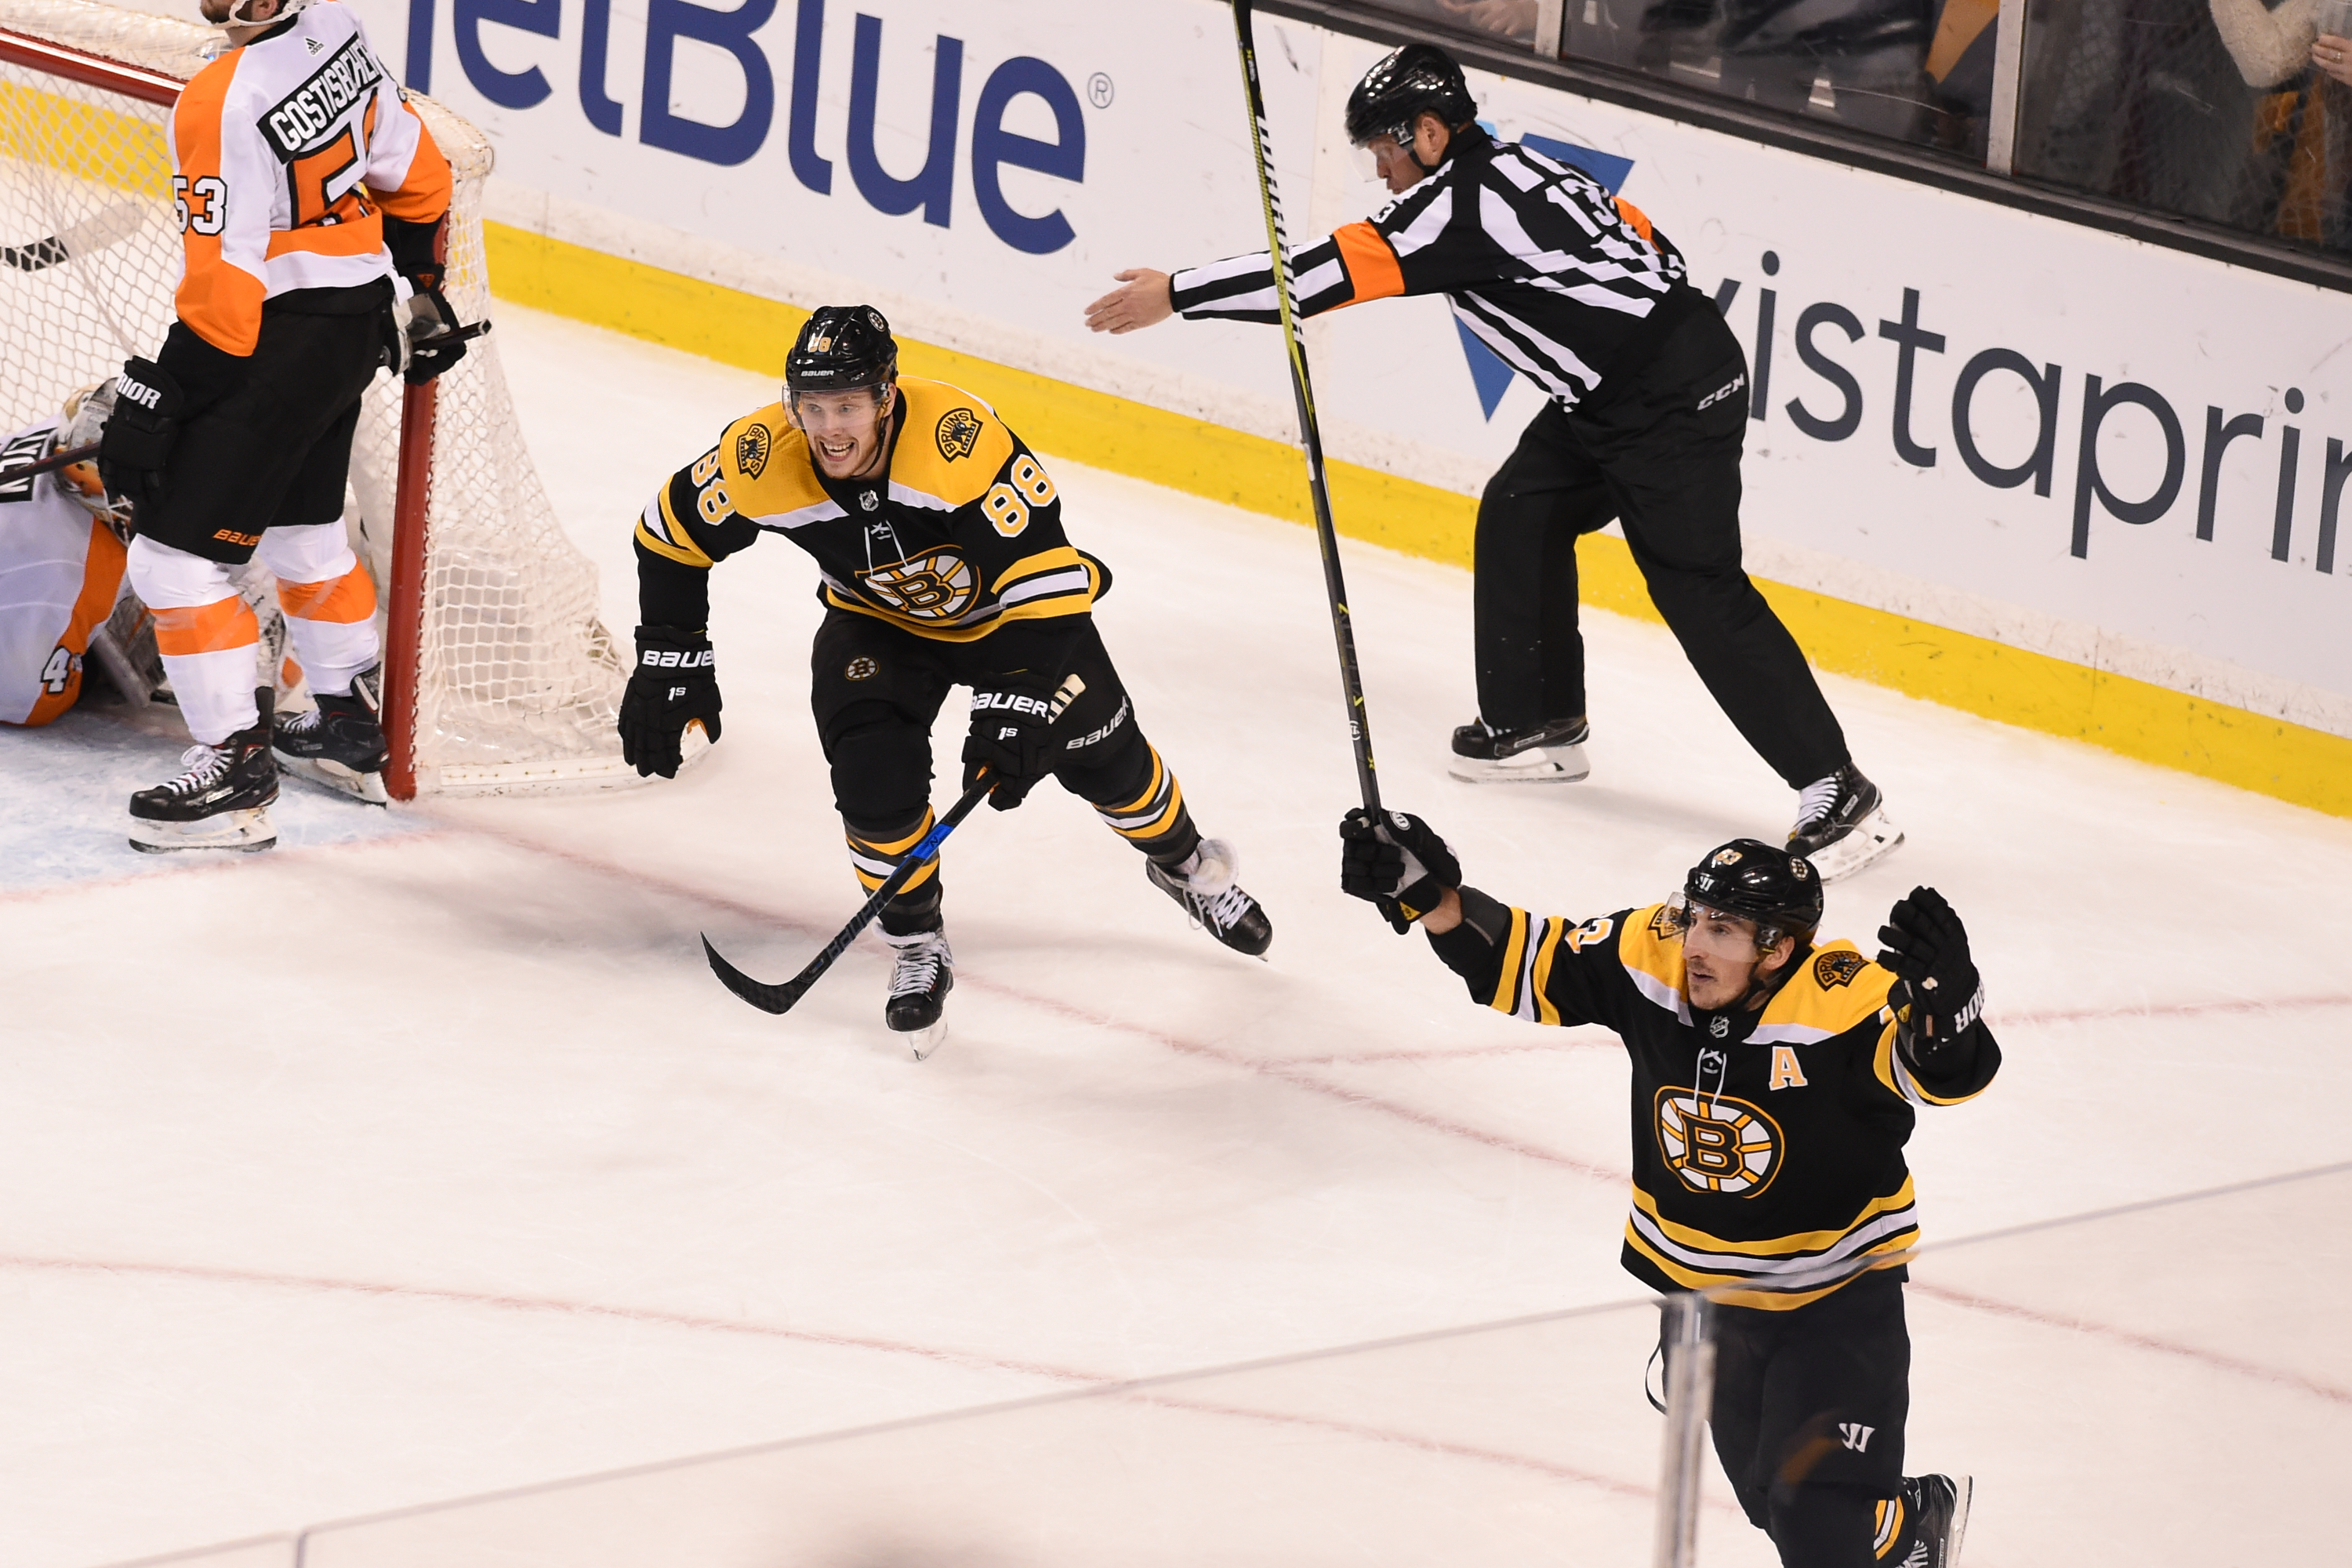 Bruins 7, Blackhawks 4: Boston ends homestand with 6-0 record